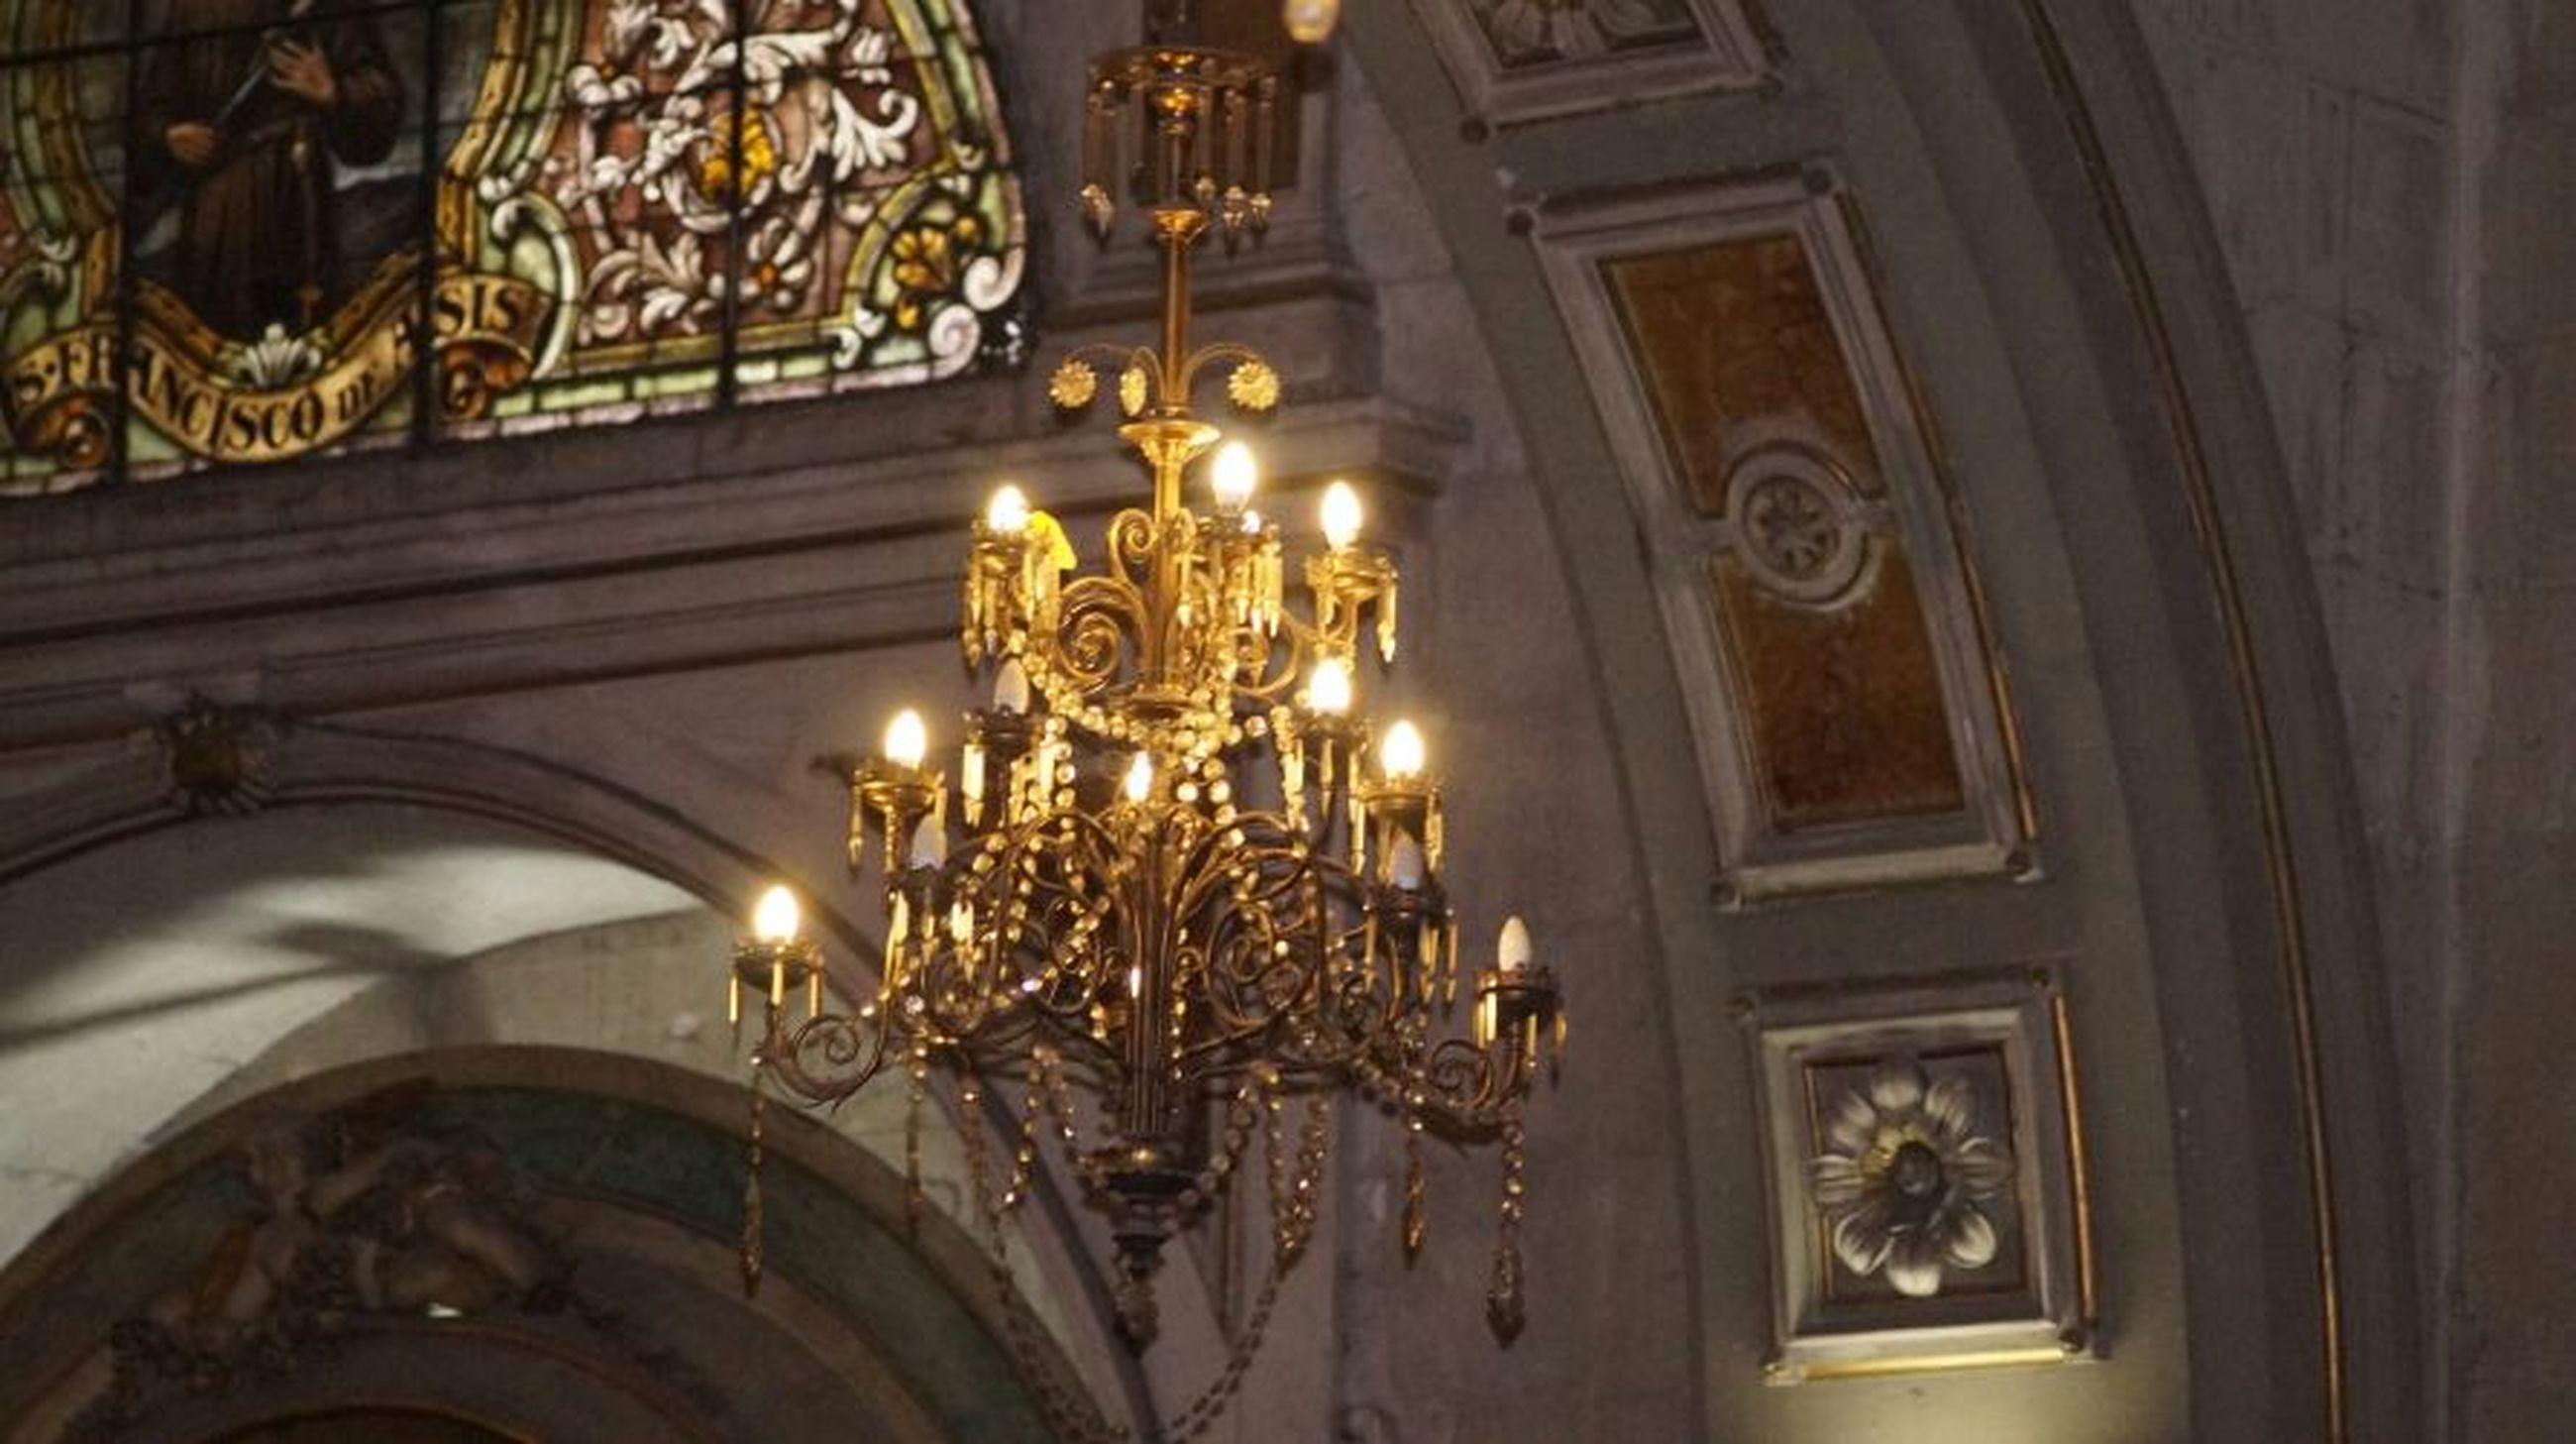 indoors, architecture, built structure, low angle view, illuminated, ceiling, ornate, lighting equipment, chandelier, decoration, hanging, place of worship, religion, design, church, building exterior, window, no people, architectural feature